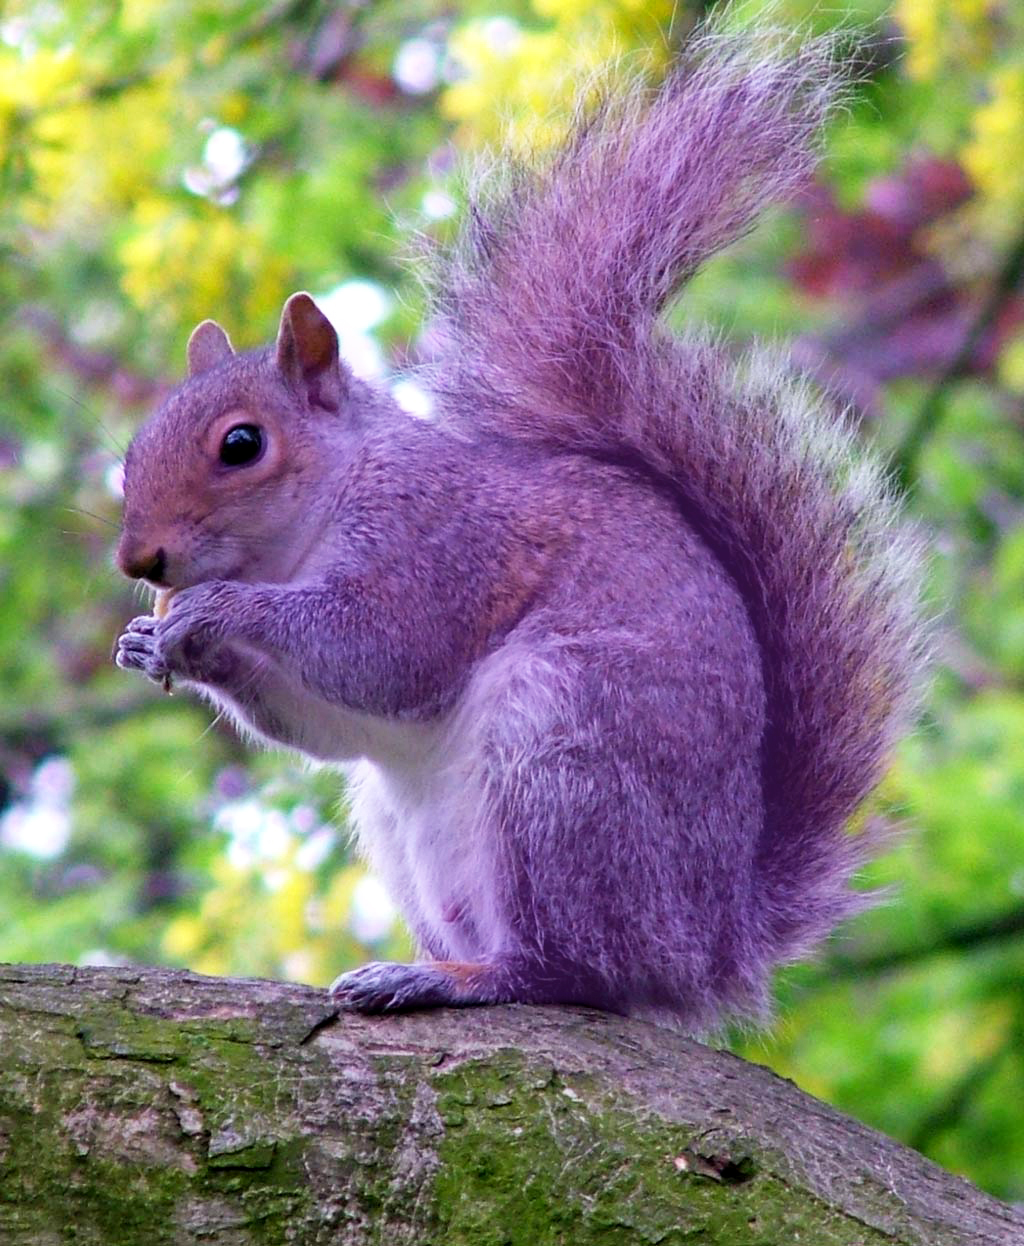 A purple squirrel